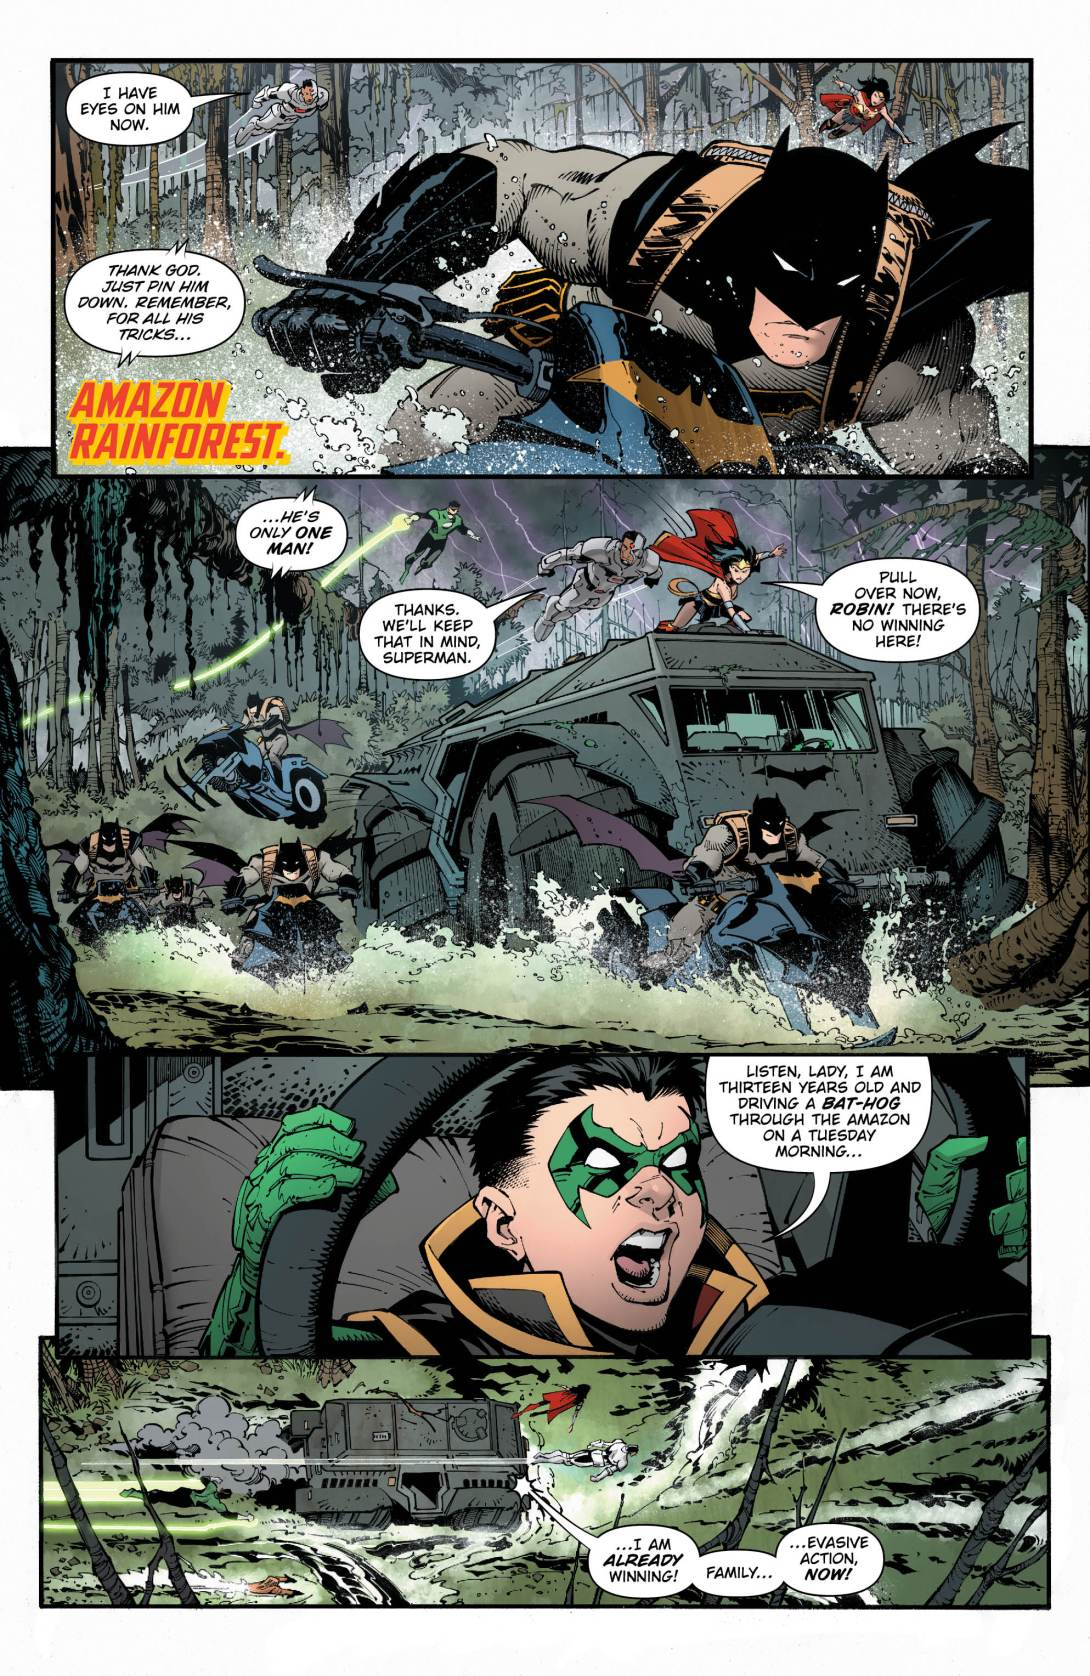 Metal 2 - Page 3 - DC Comics News